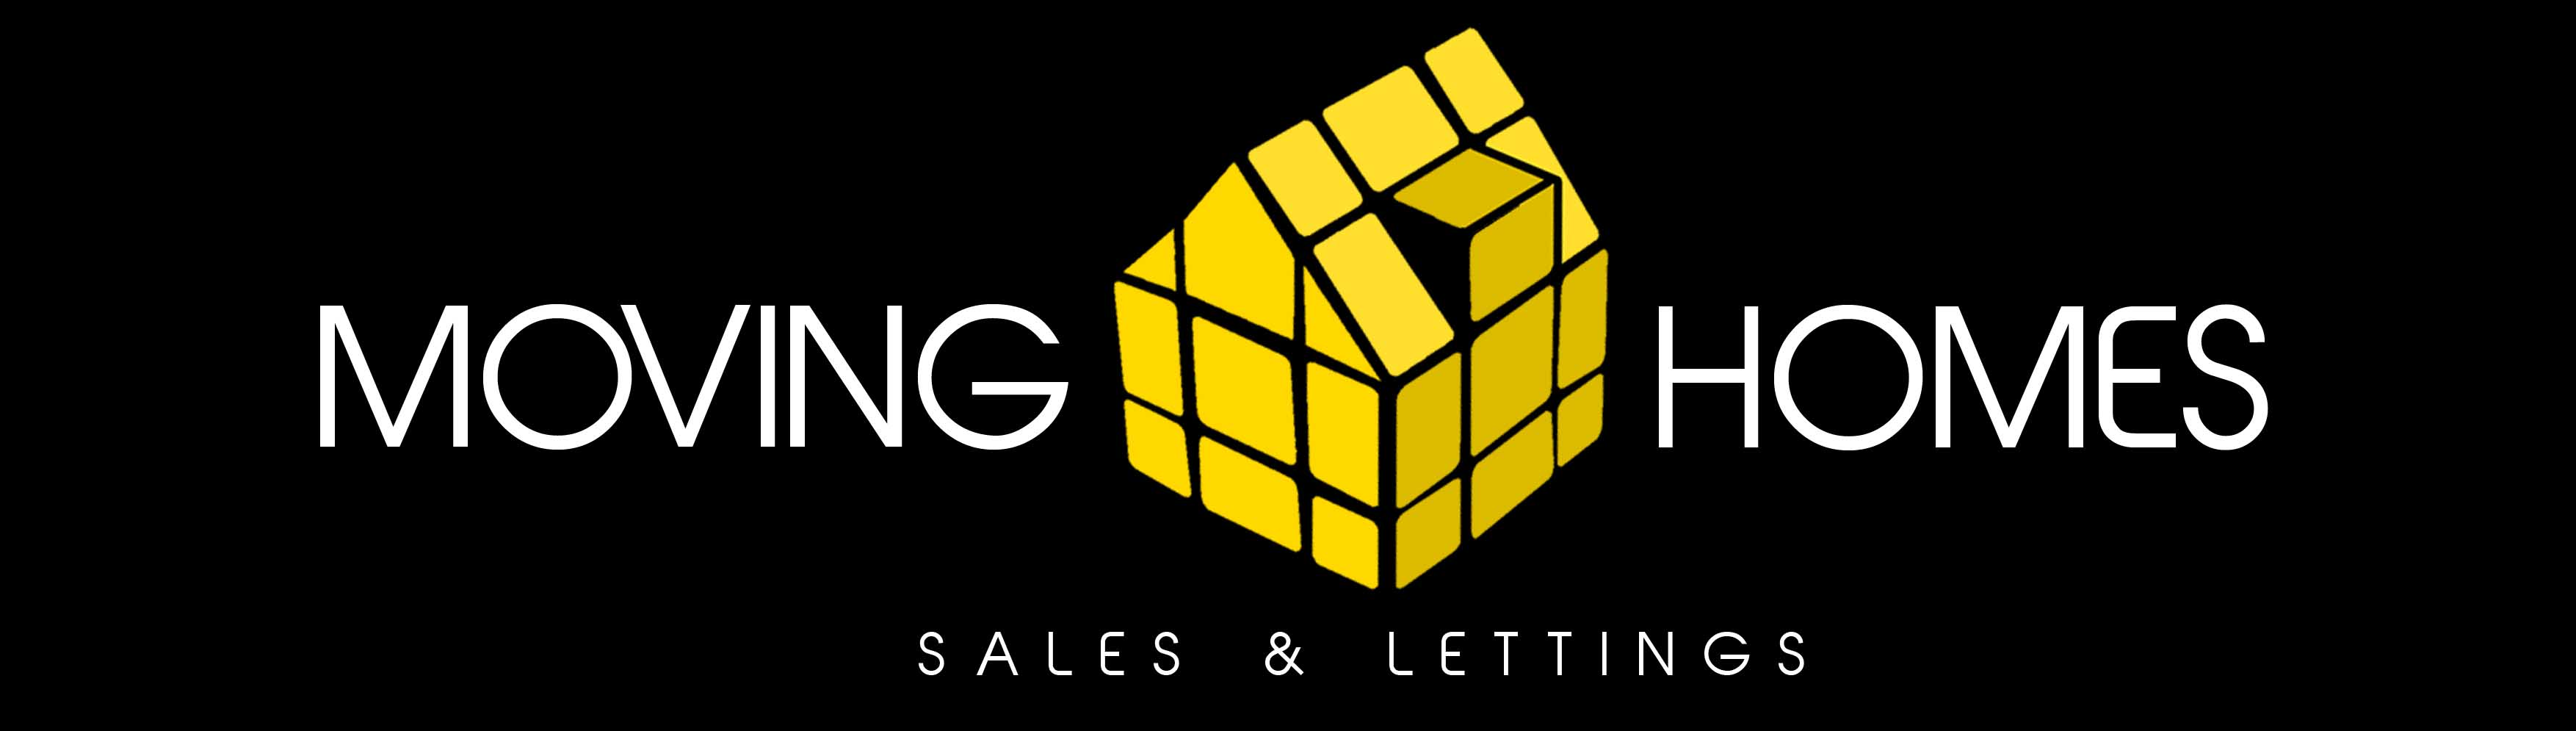 Moving Homes Sales & Lettings